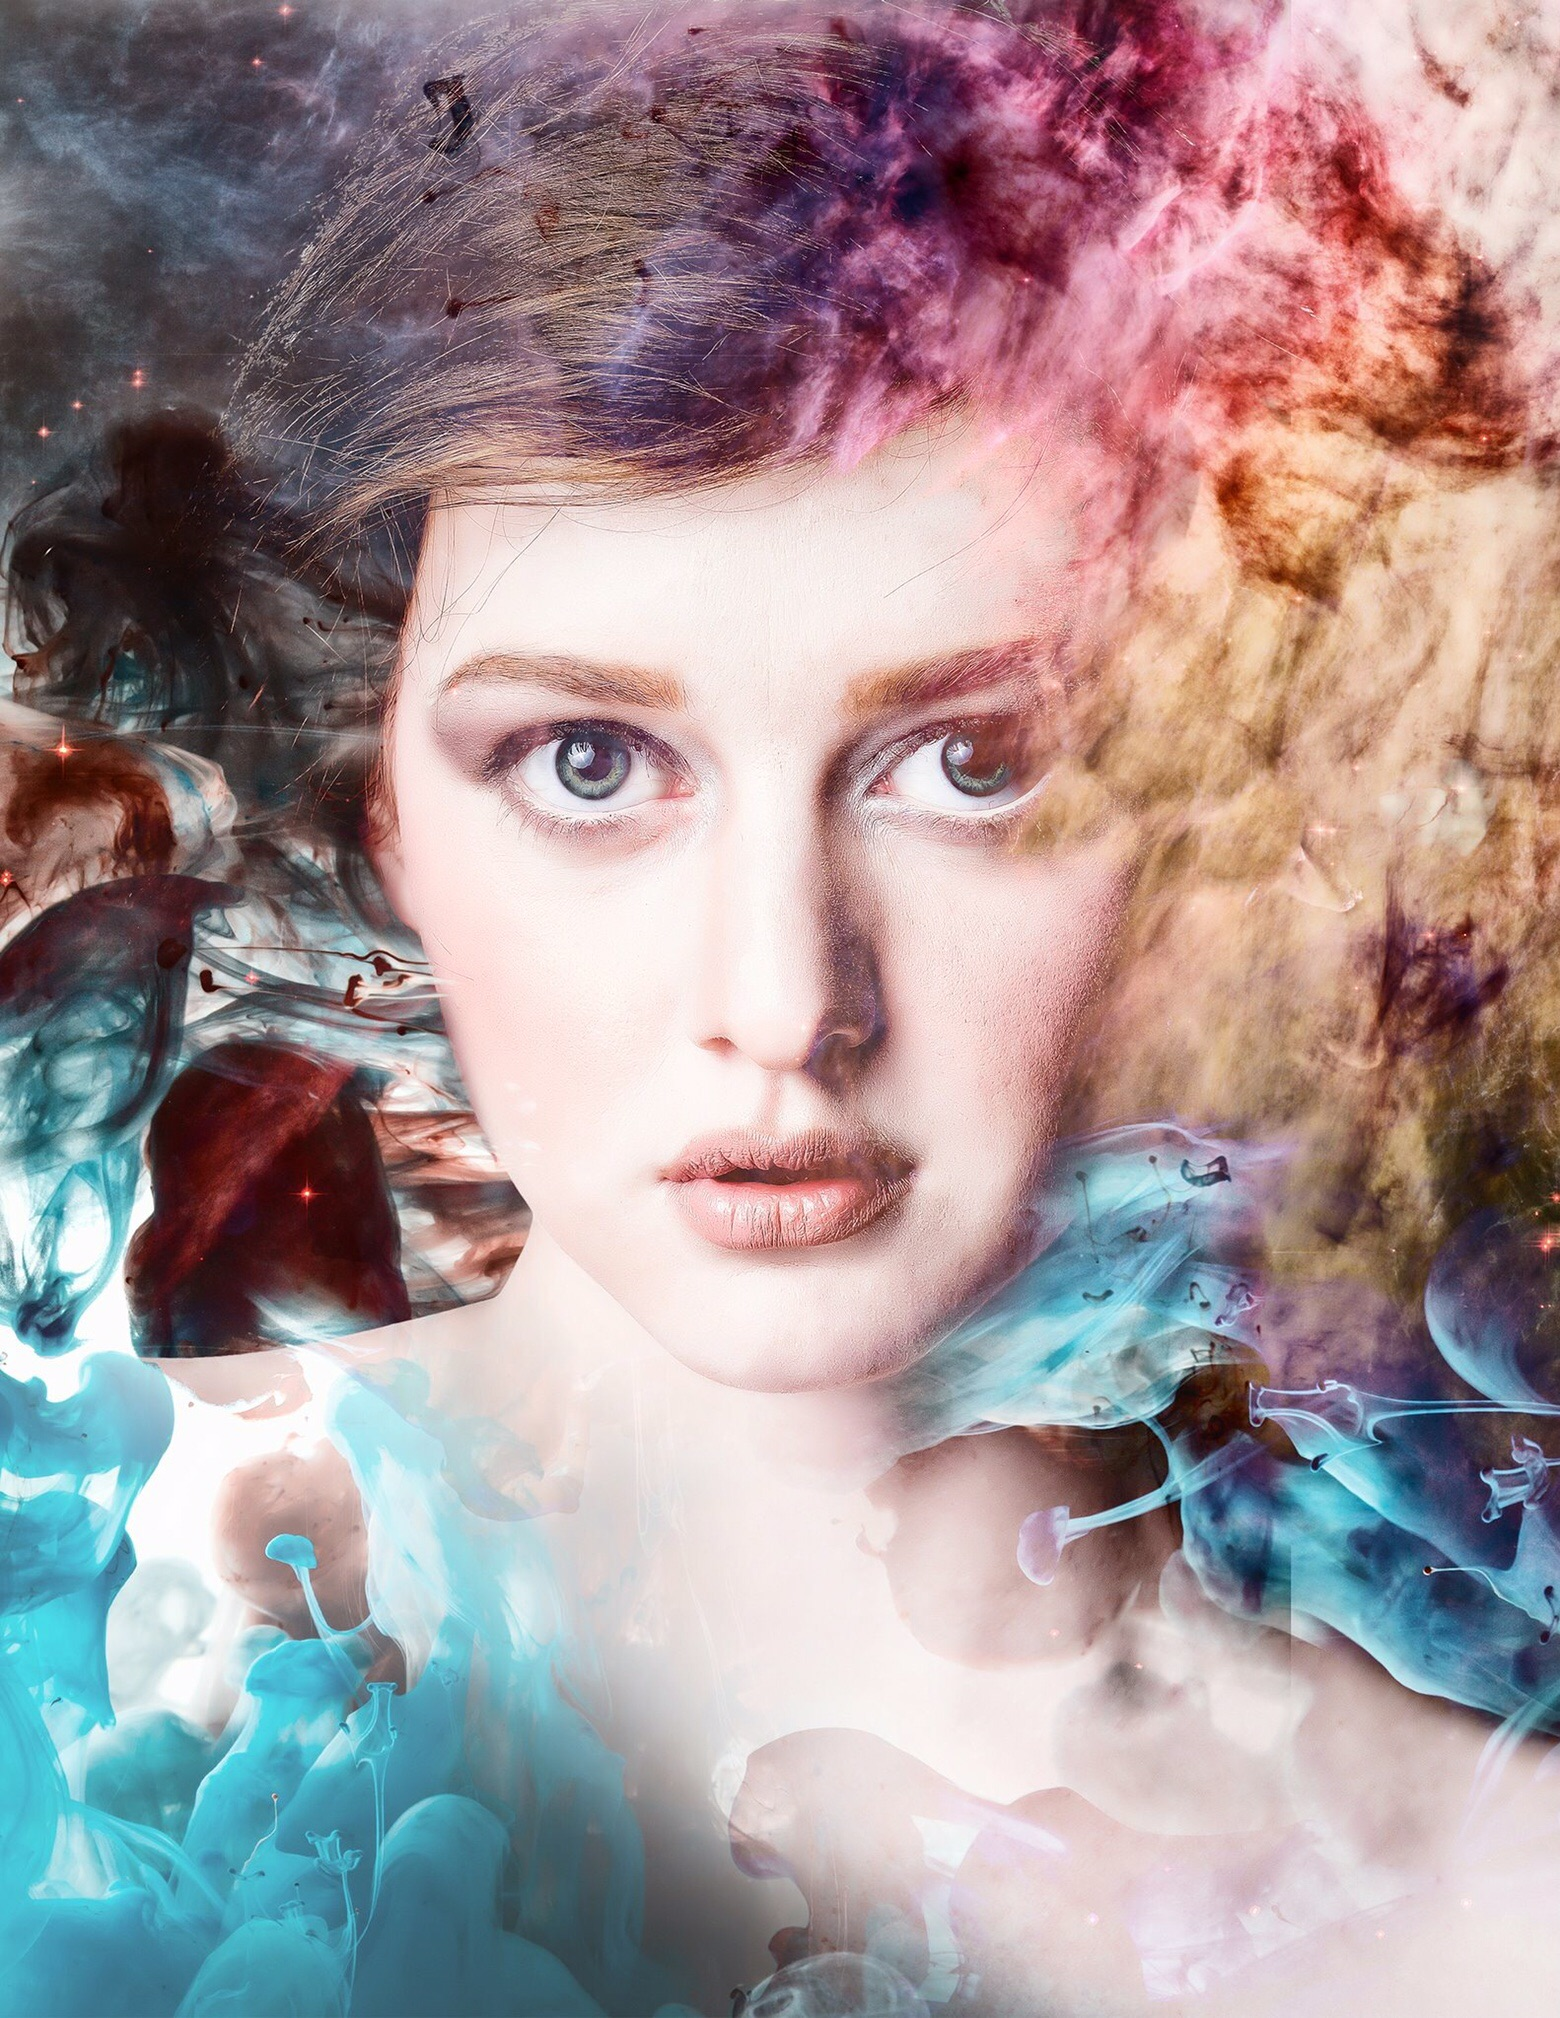 TURBULENCE featuring model: Enry with hair and makeup by Elena Ismail